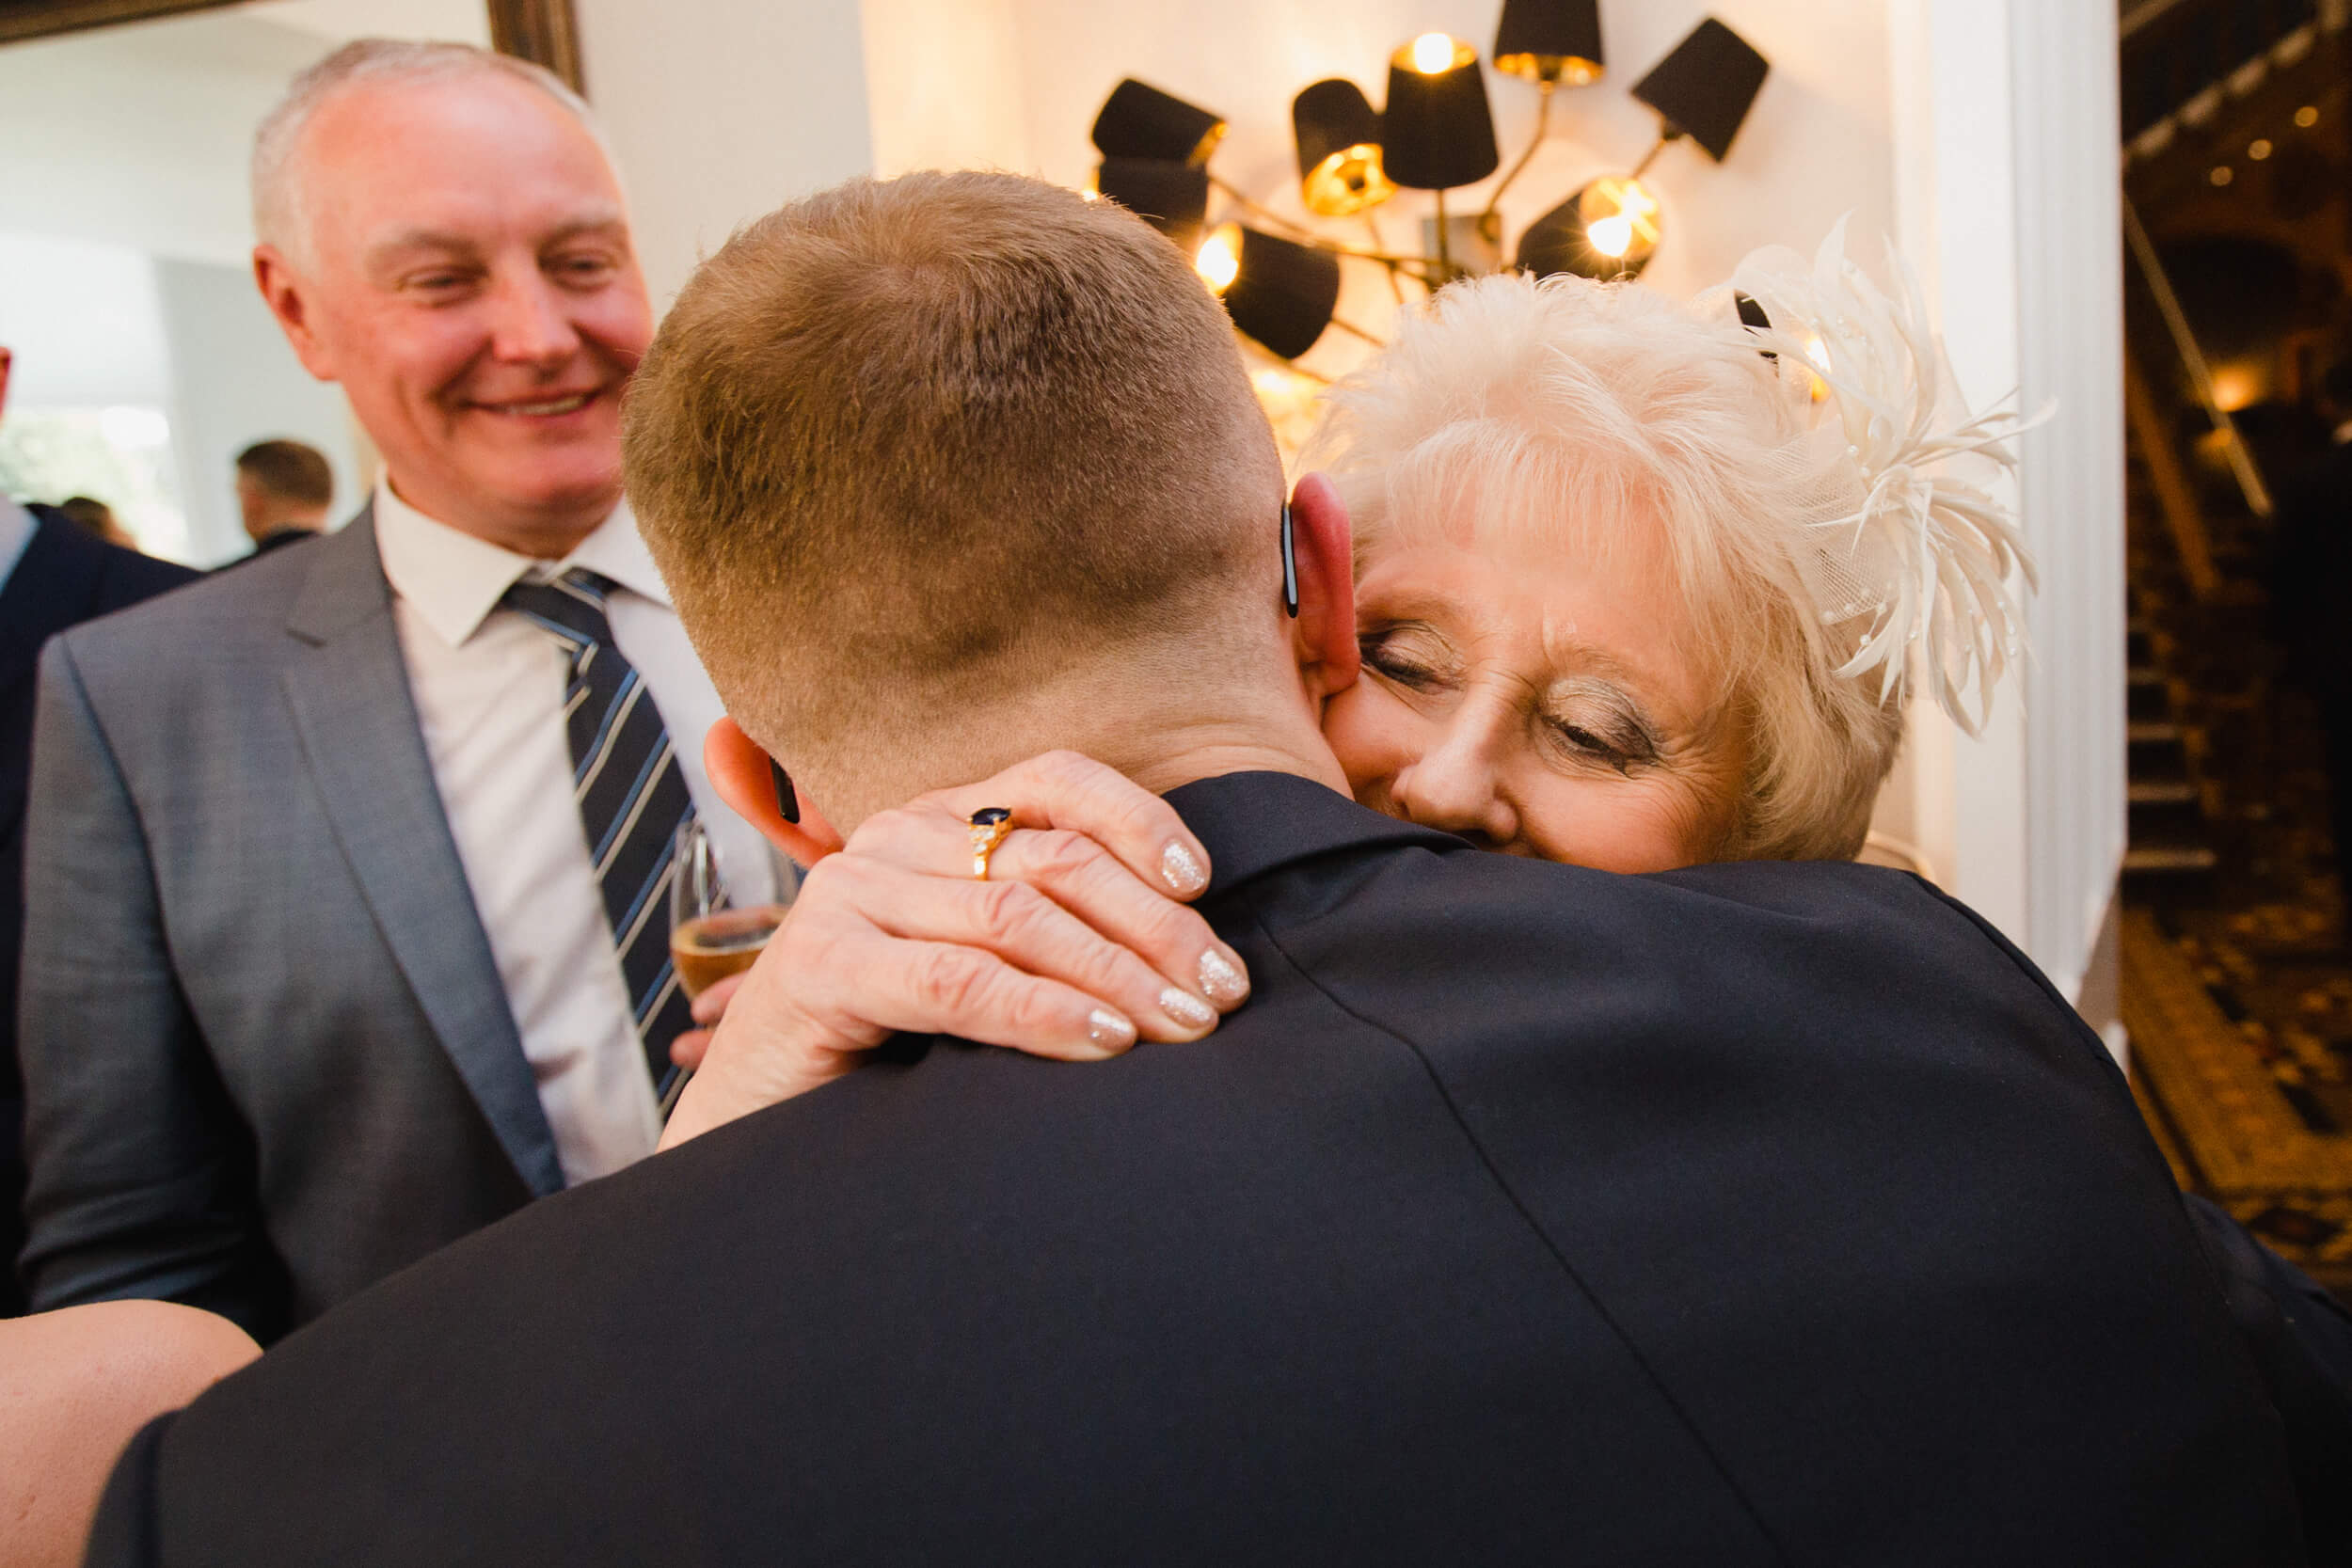 grandmother hugs and shares intimate moment with groom